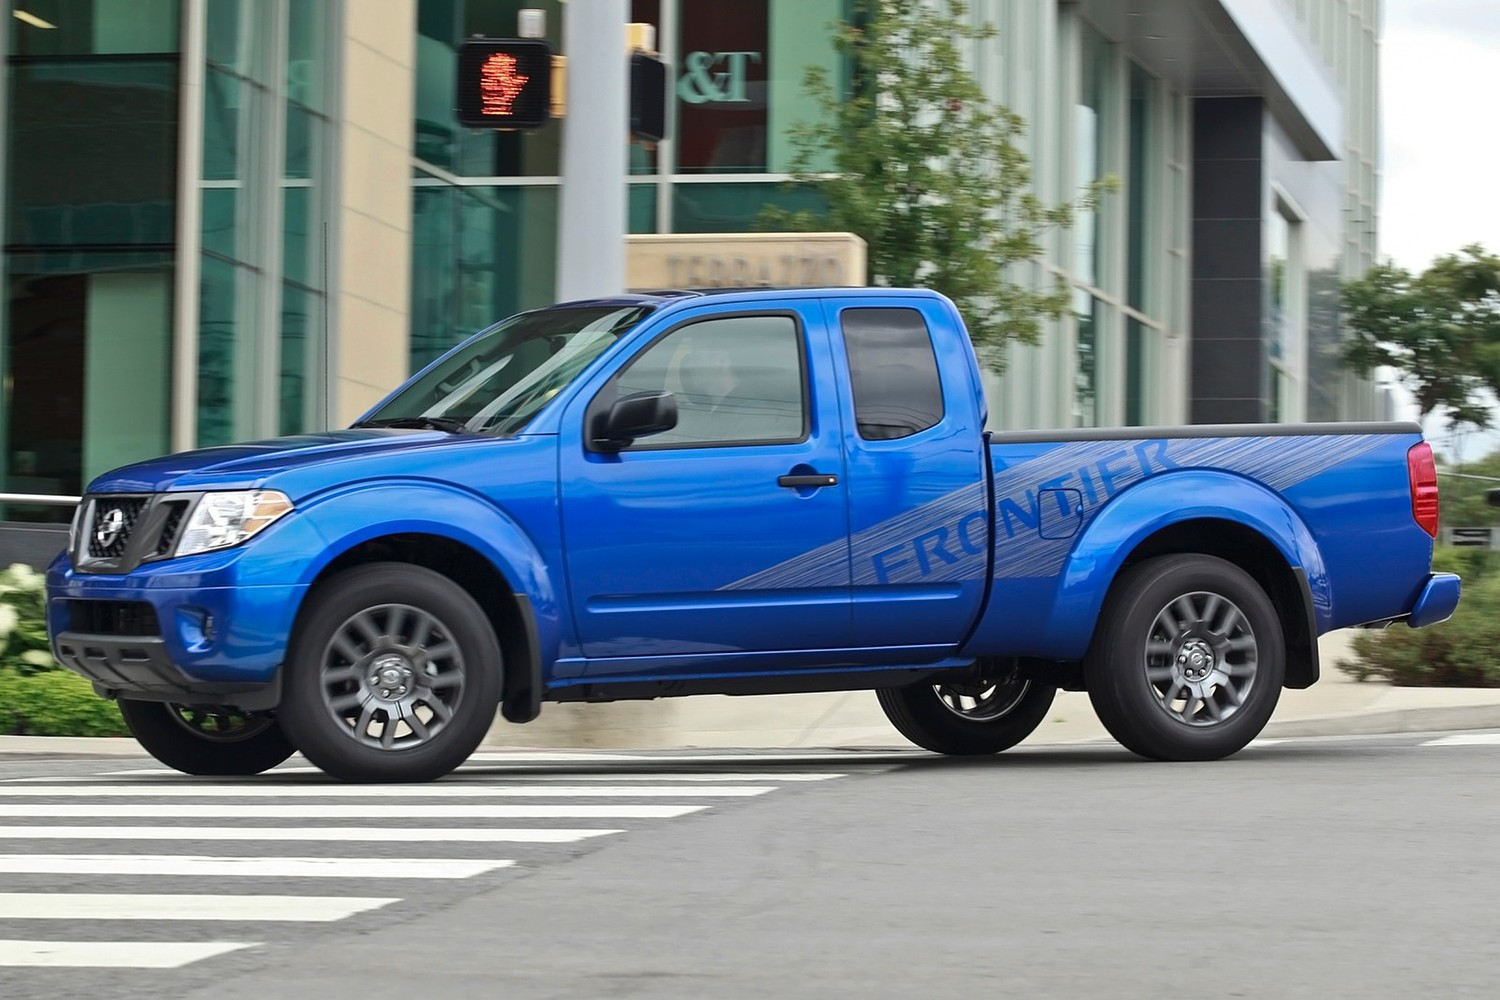 Nissan Frontier SV Extended Cab Pickup Exterior (2013 model year shown)